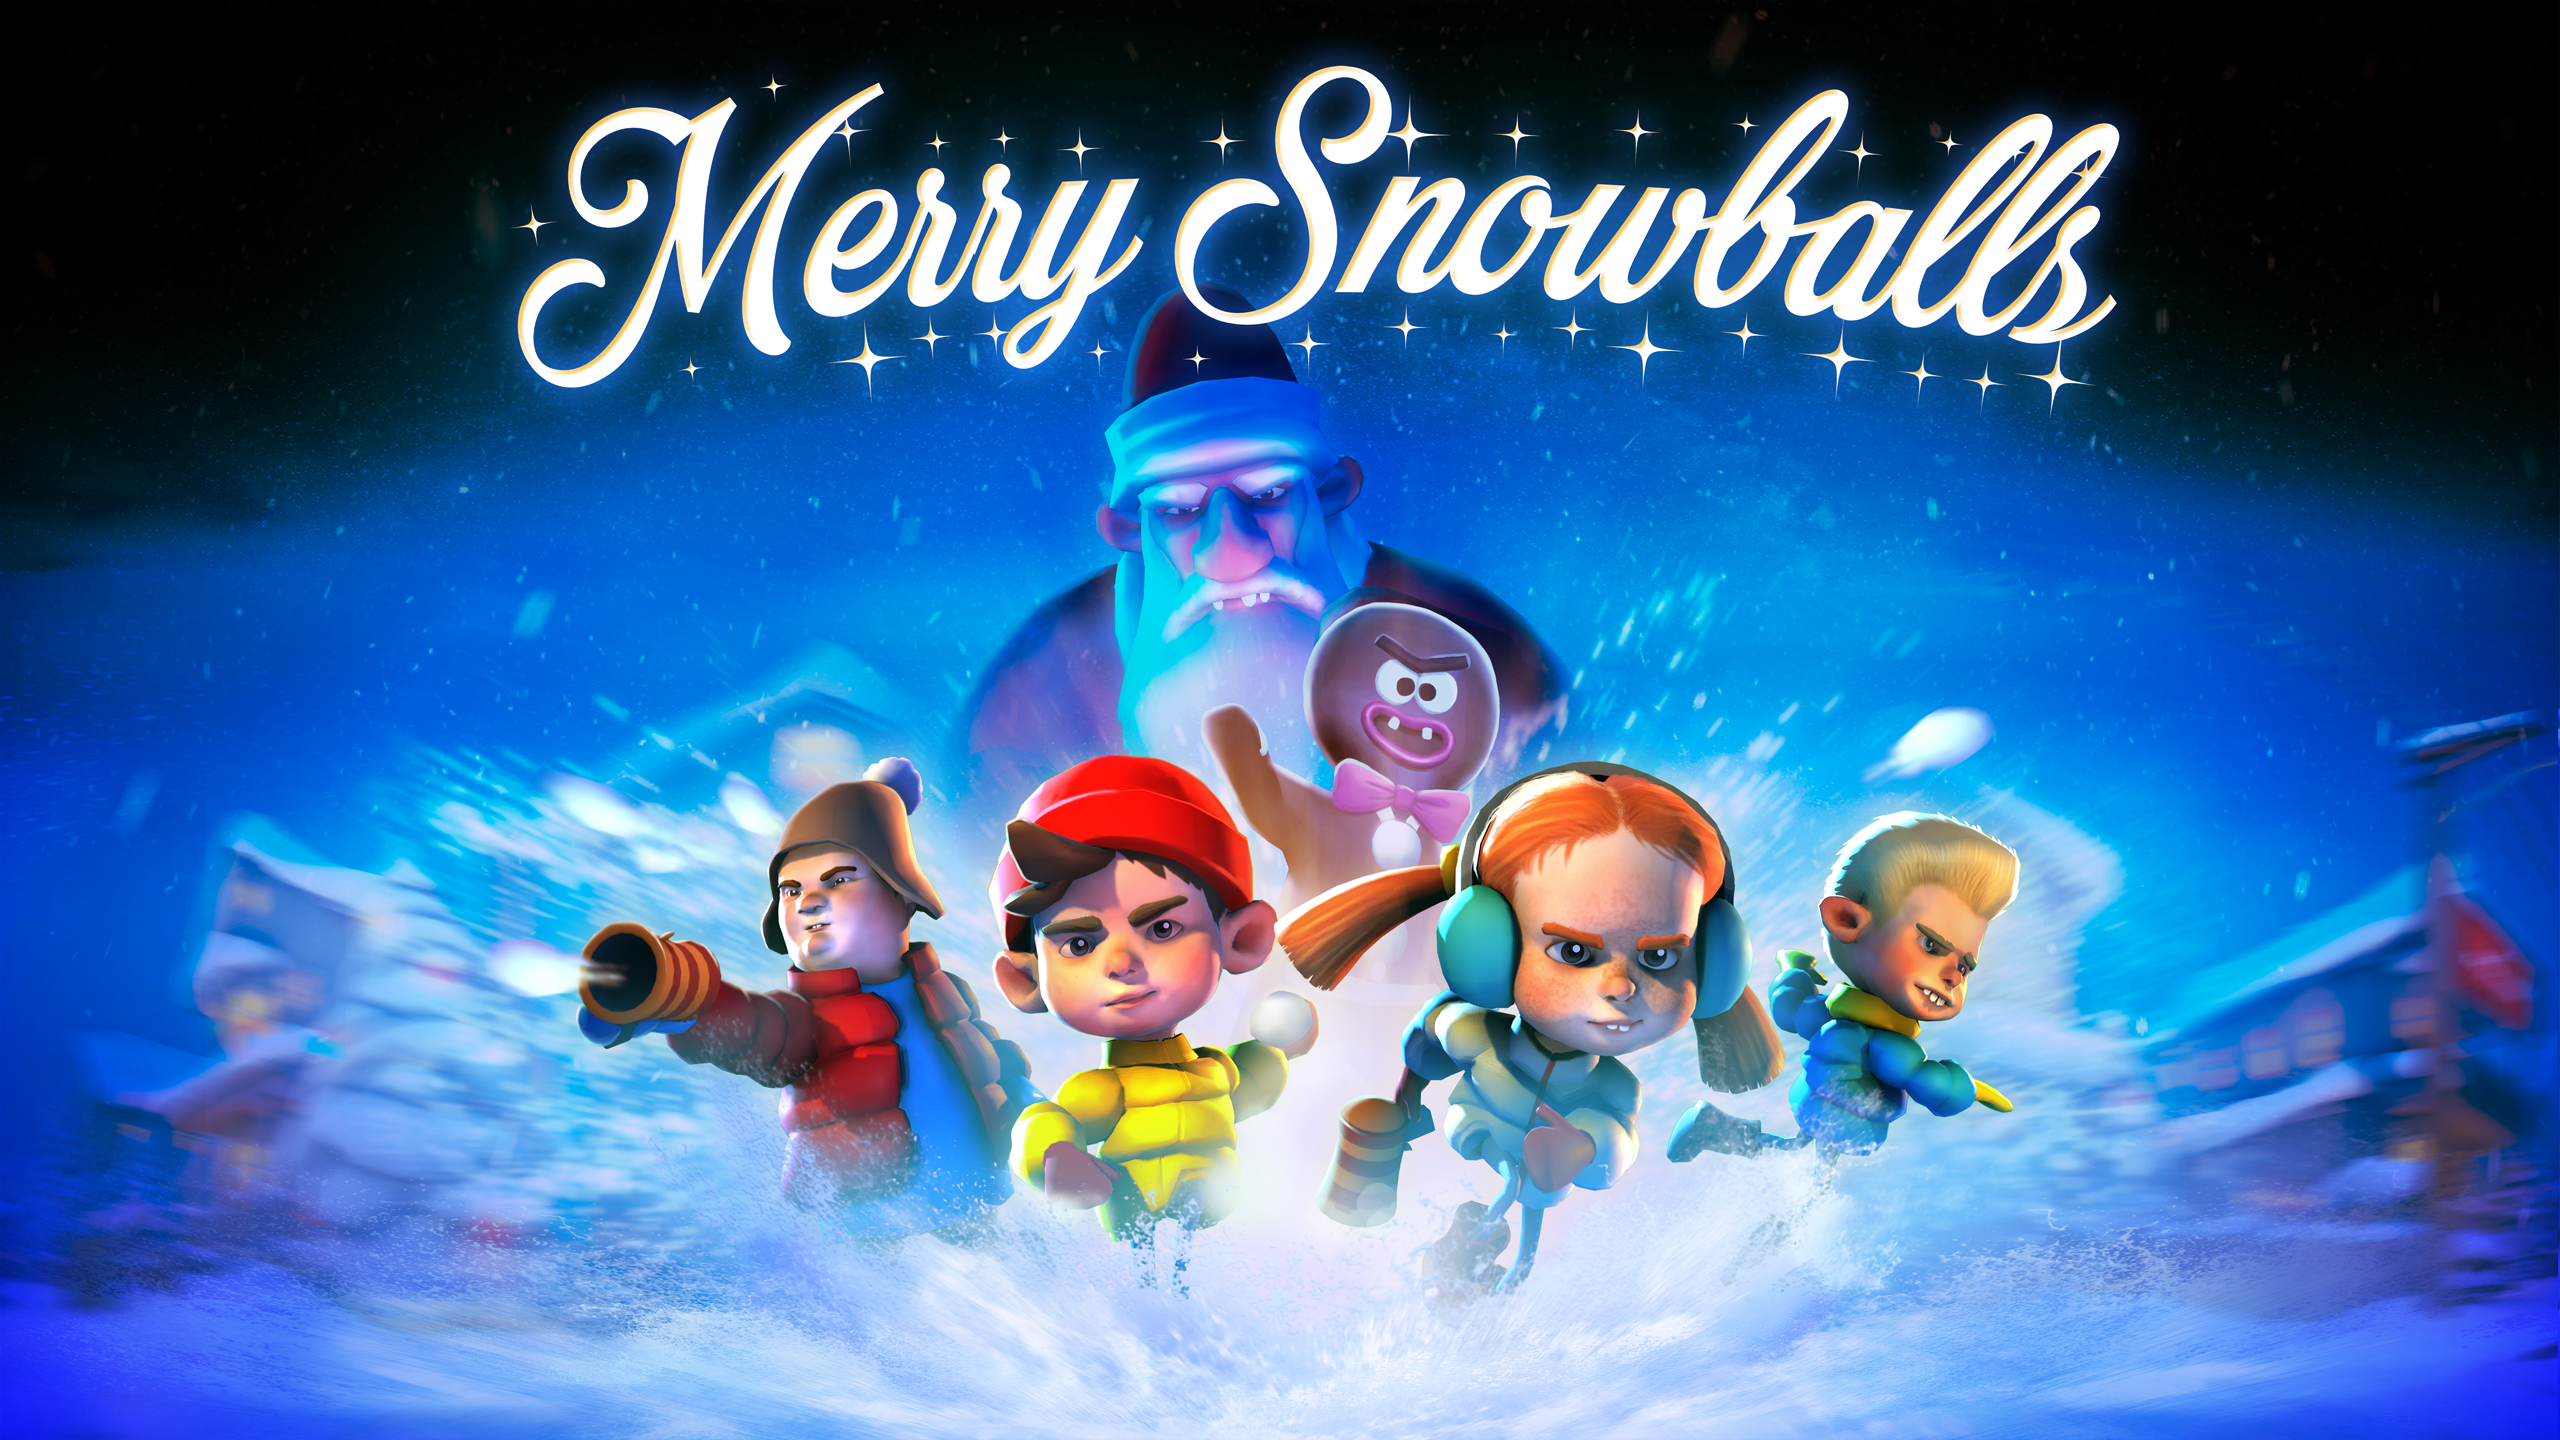 Six platforms, three months: bringing Merry Snowballs to mobile VR